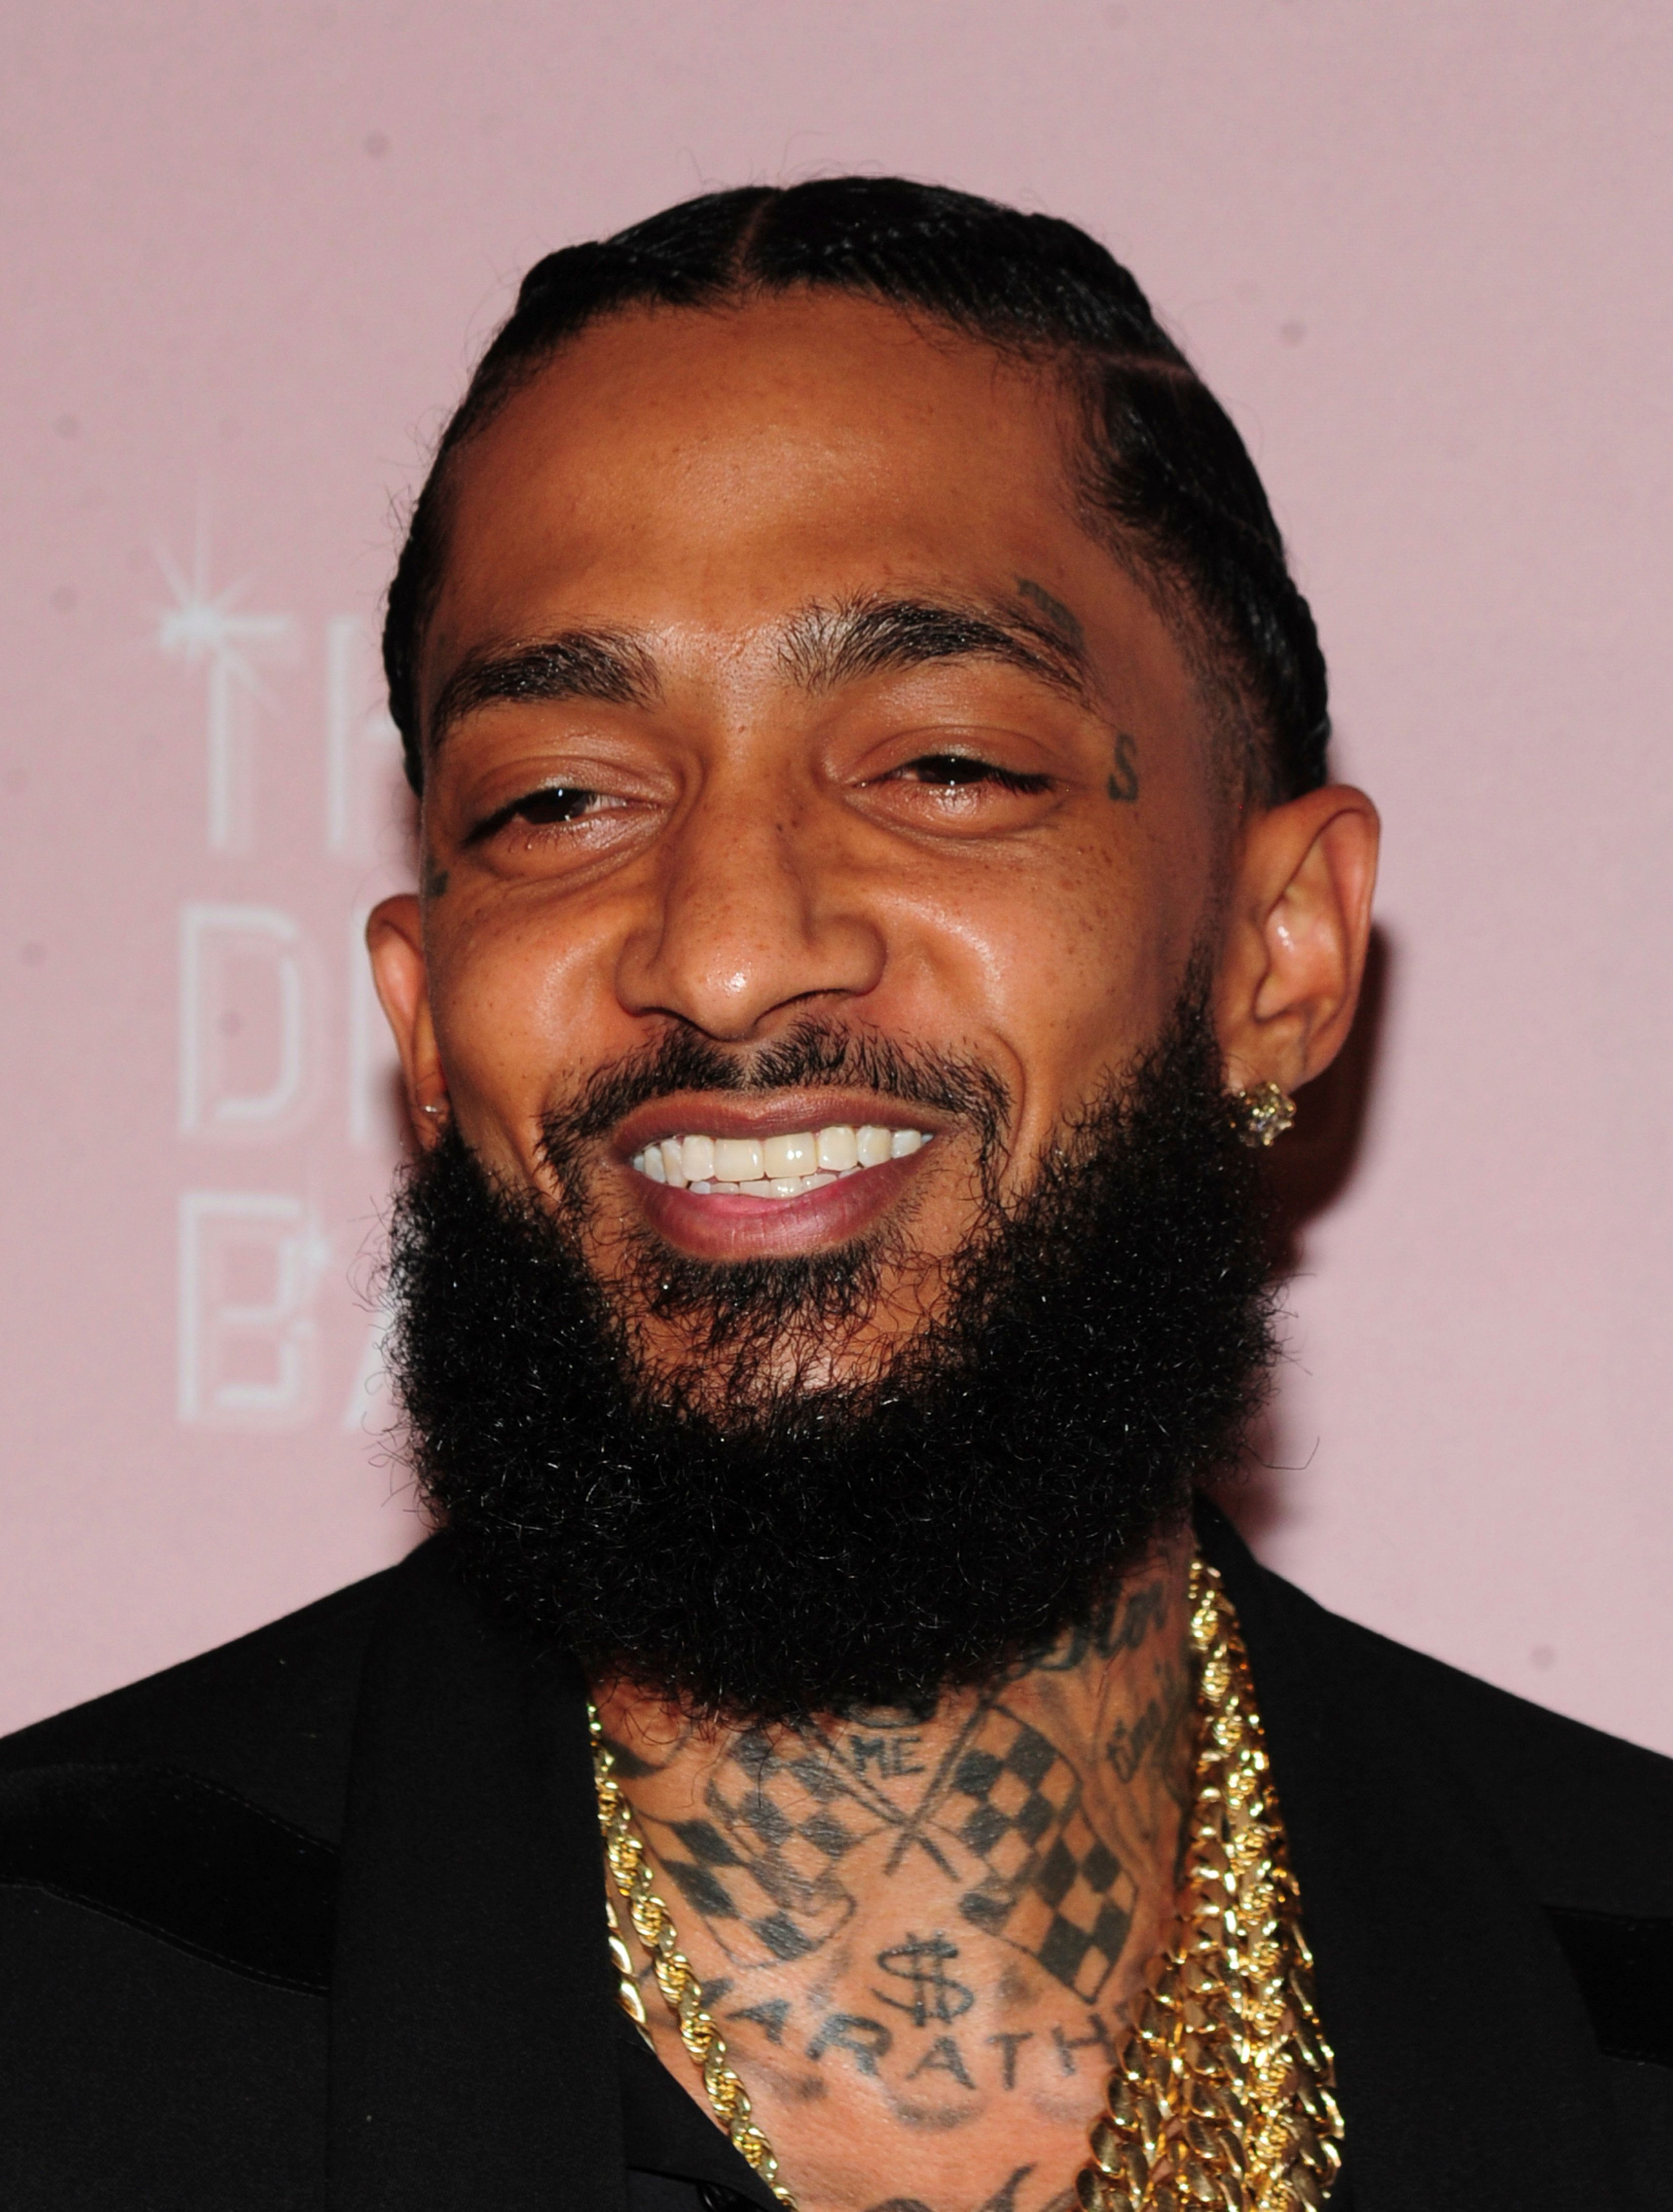 ***FILE PHOTO*** Rapper Nipsey Hussle killed in shooting outside his clothing store in Los Angeles. NEW YORK, NY - September 13: Nipsey Hussle attends the 2018 Diamond Ball at Cipriani Wall Street on September 13, 2018 in New York City. Credit: John Palmer / Media Punch /IPX